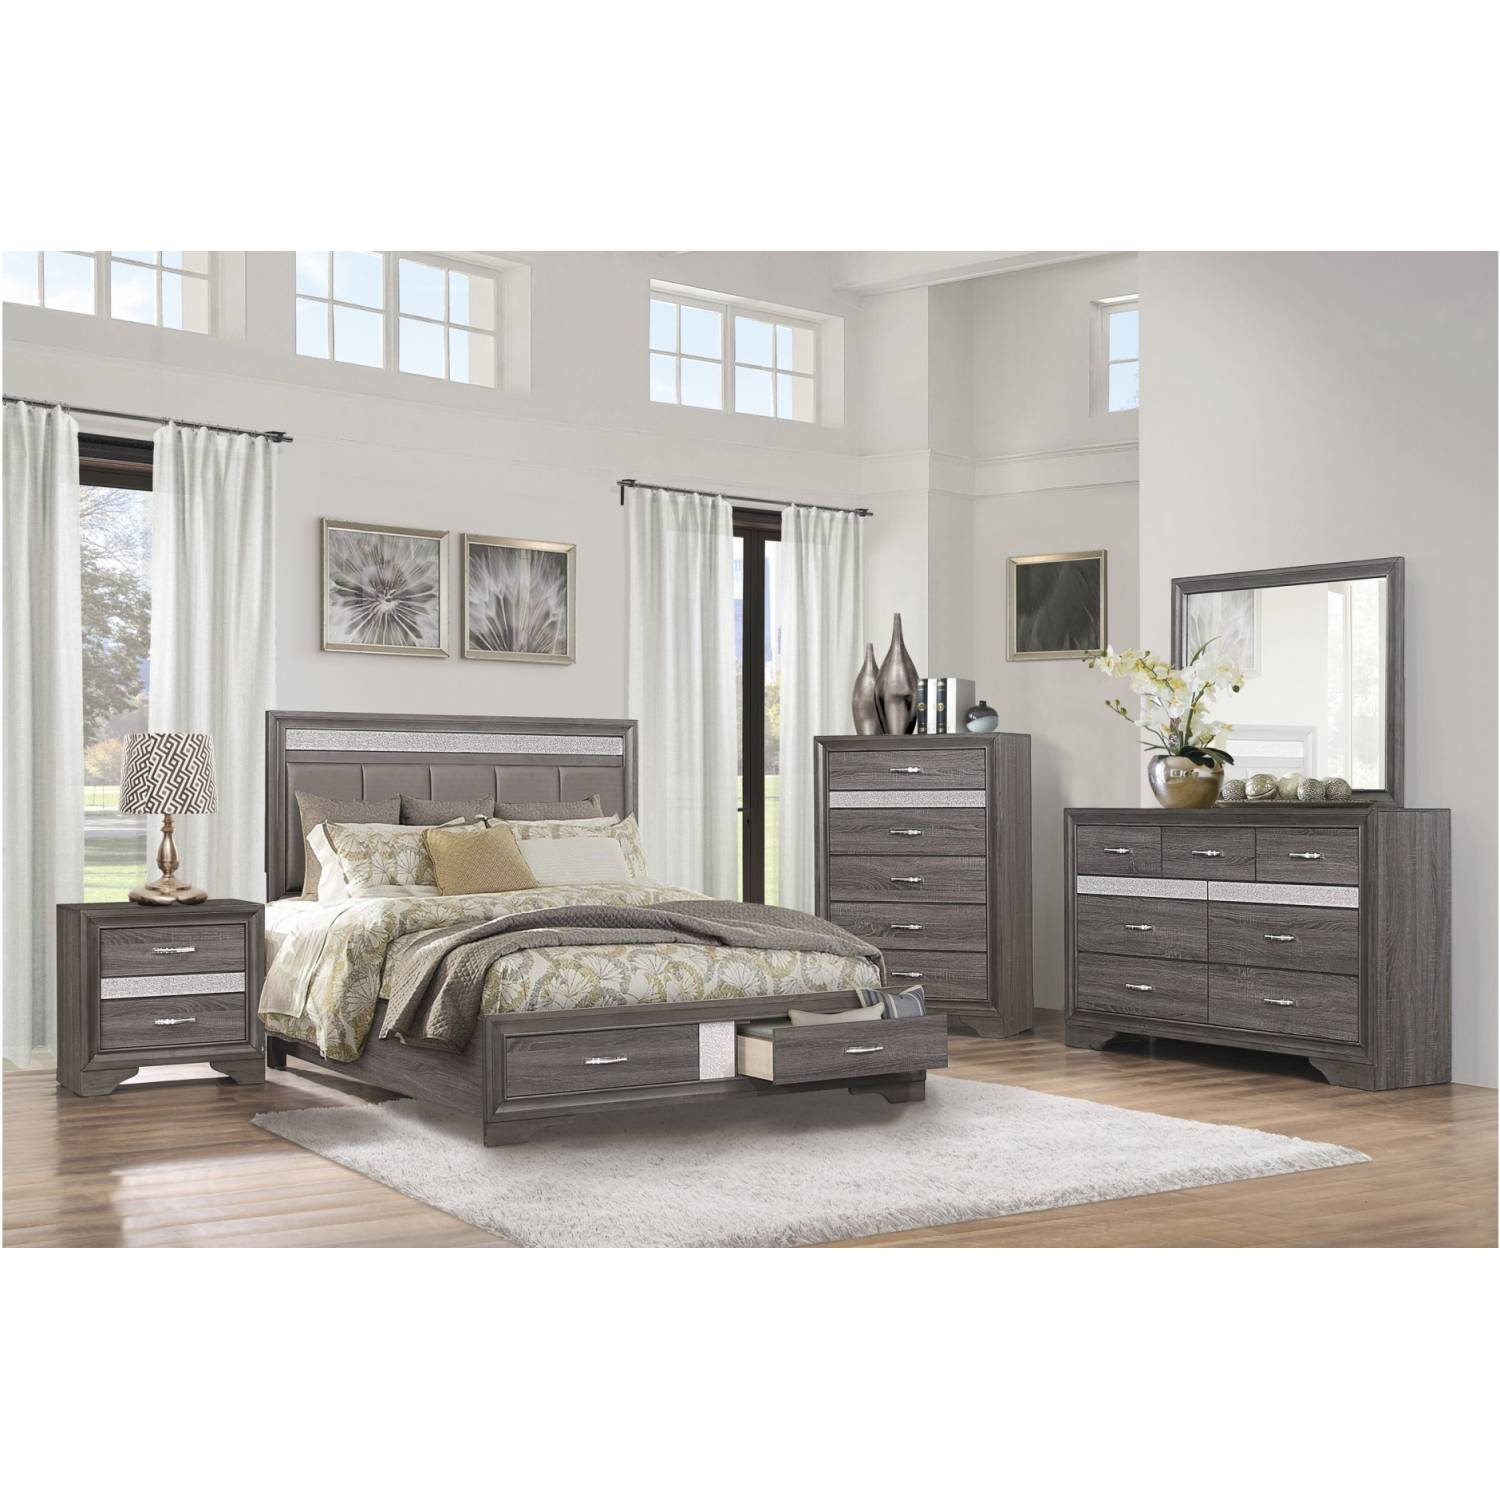 Miter 4 Piece King Bedroom Set Andrew S Furniture And Mattress